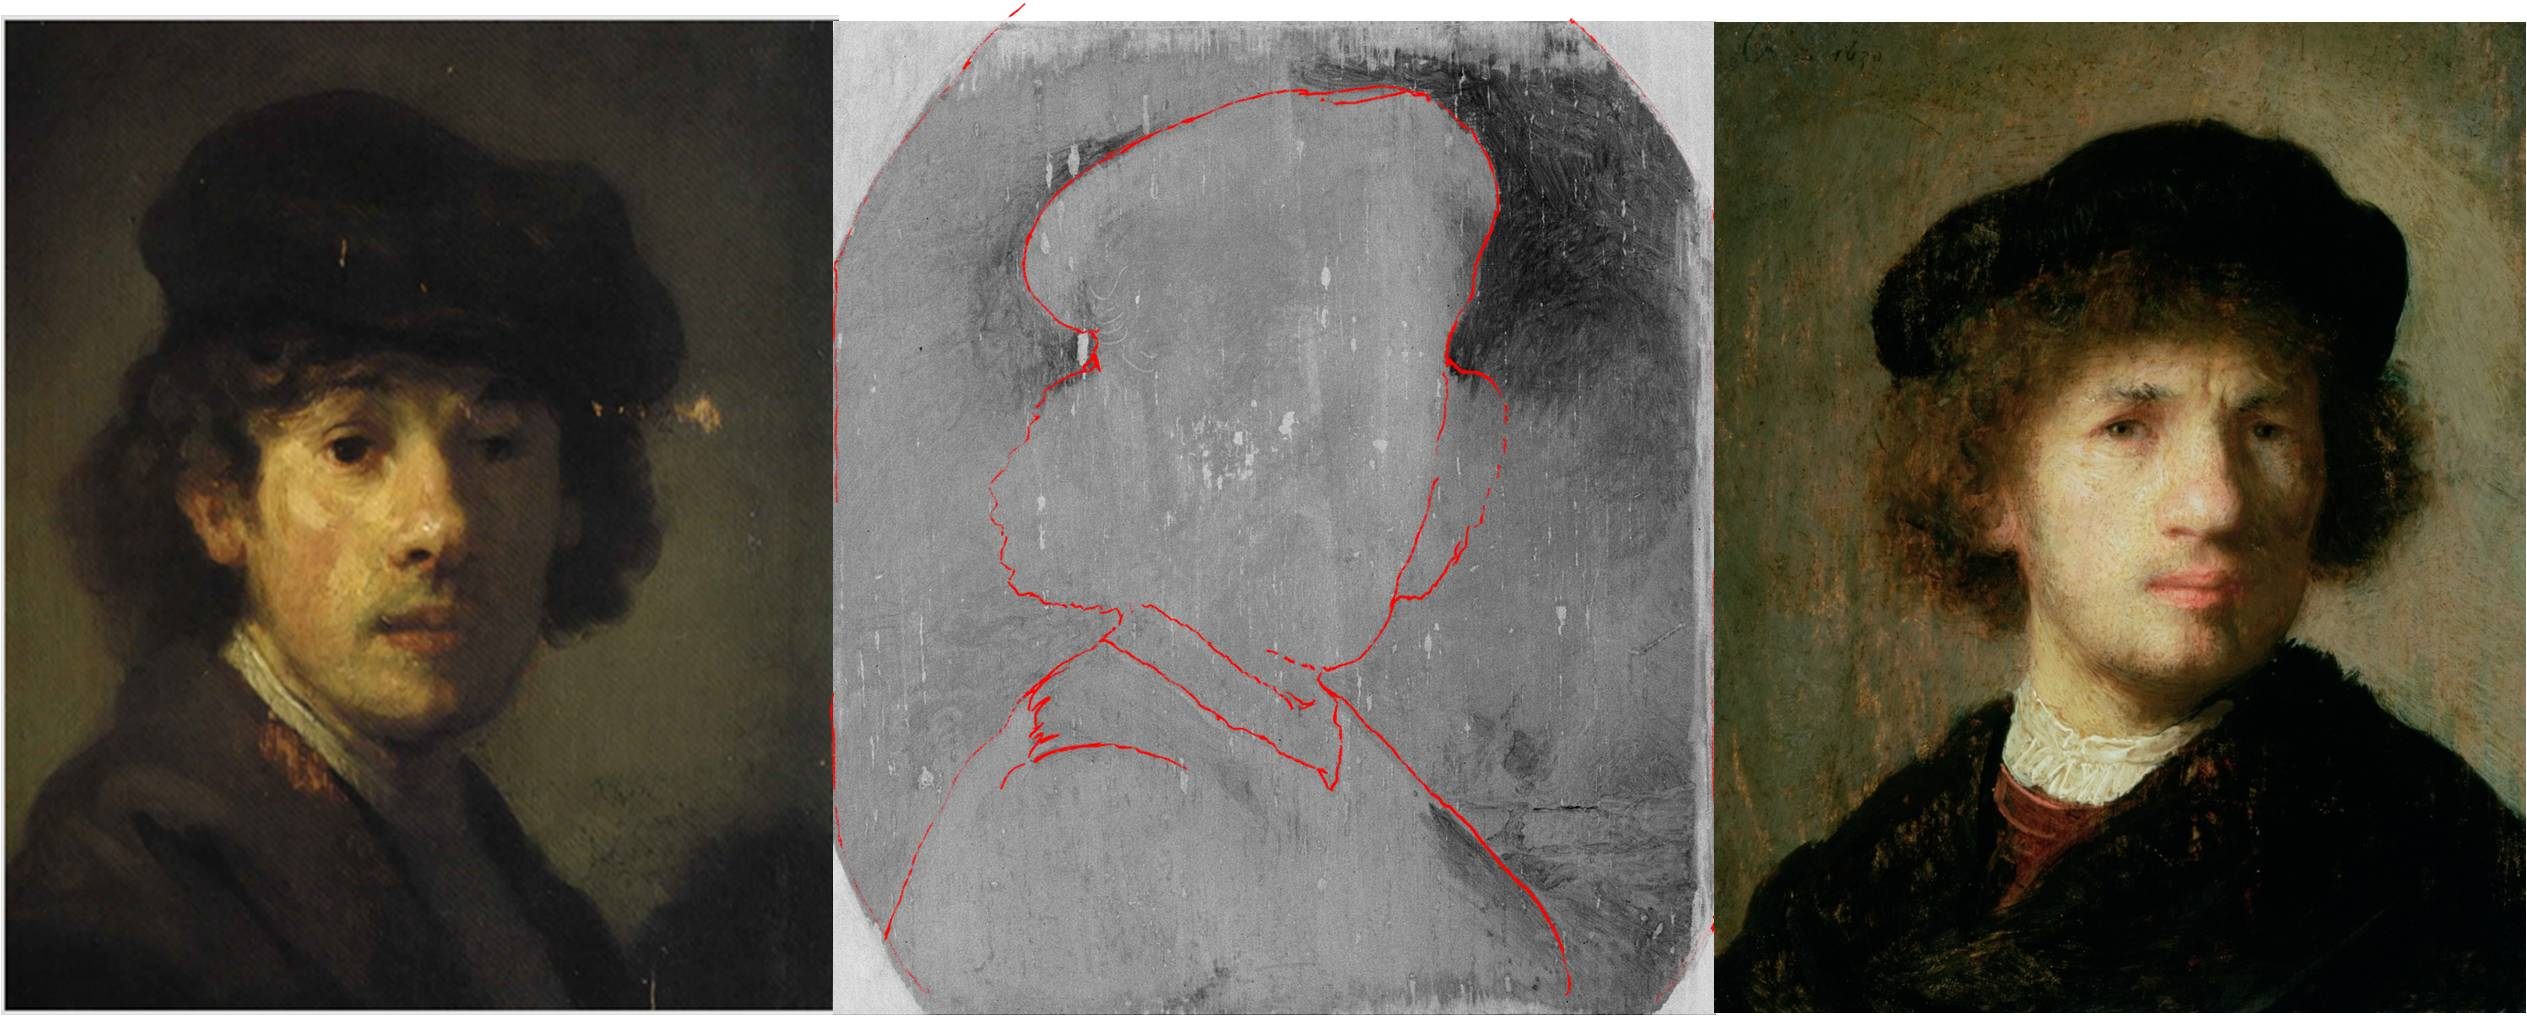 Using x rays to peel back the layers of a purported for X ray painting